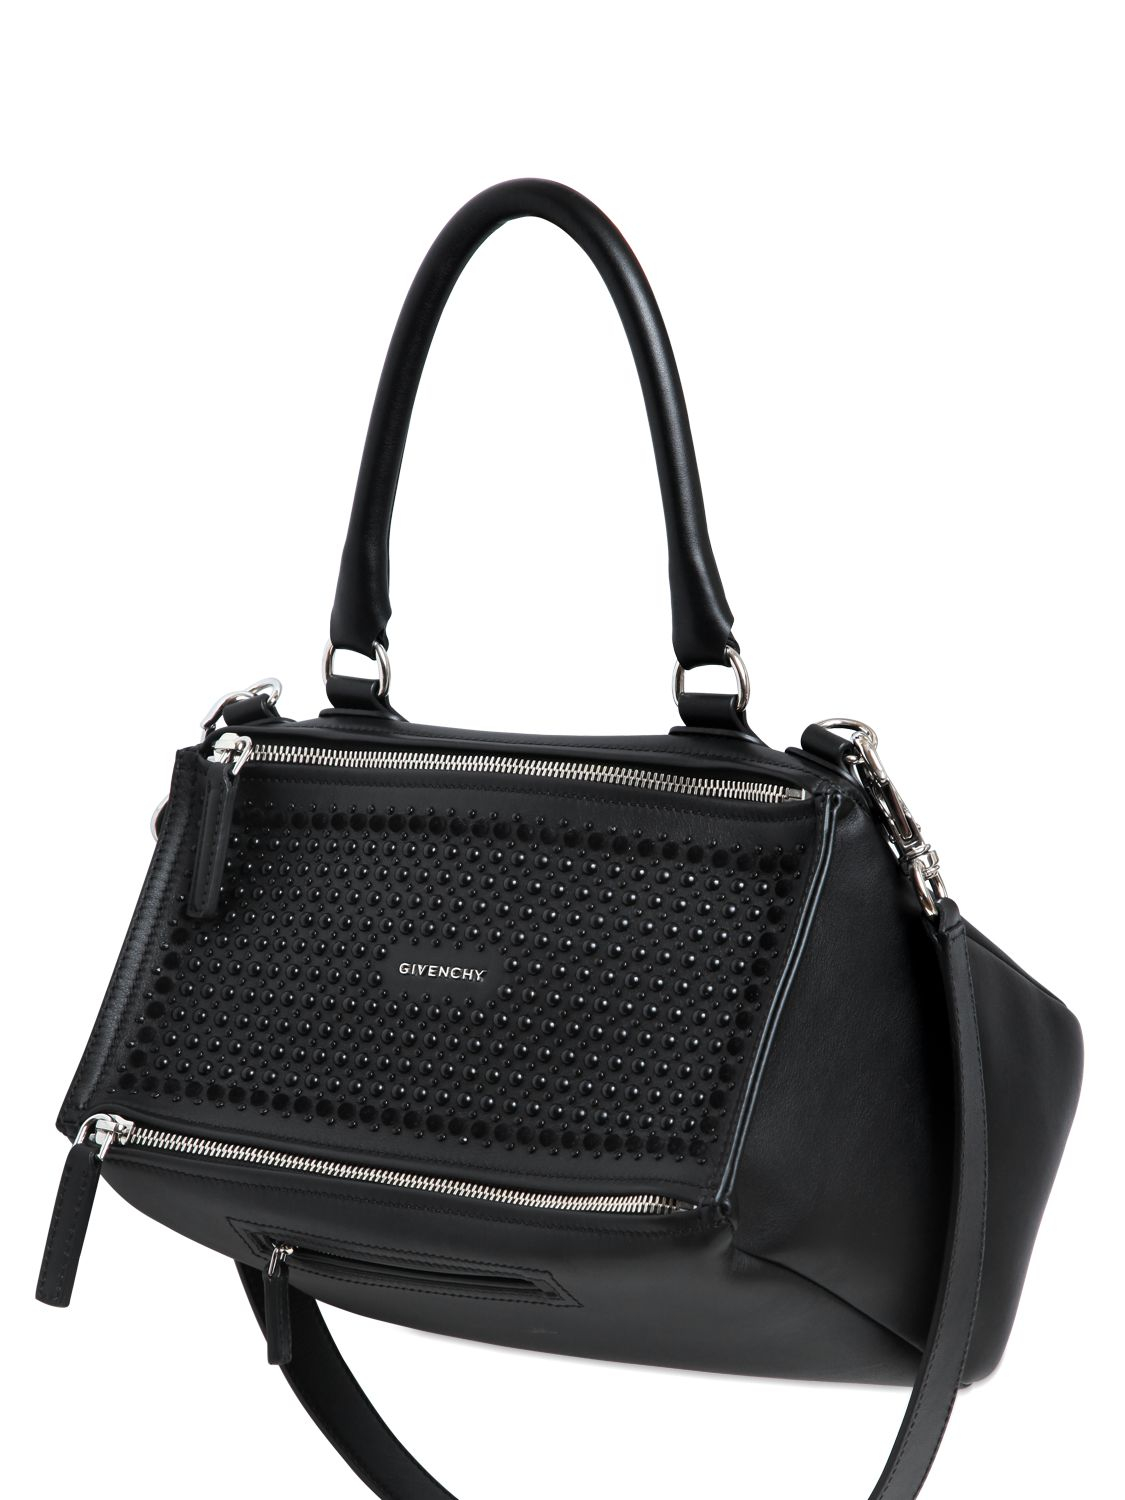 Bag At You Fashion Blog Hip E Bags White Backpack: Givenchy Medium Pandora Studded Leather Bag In Black